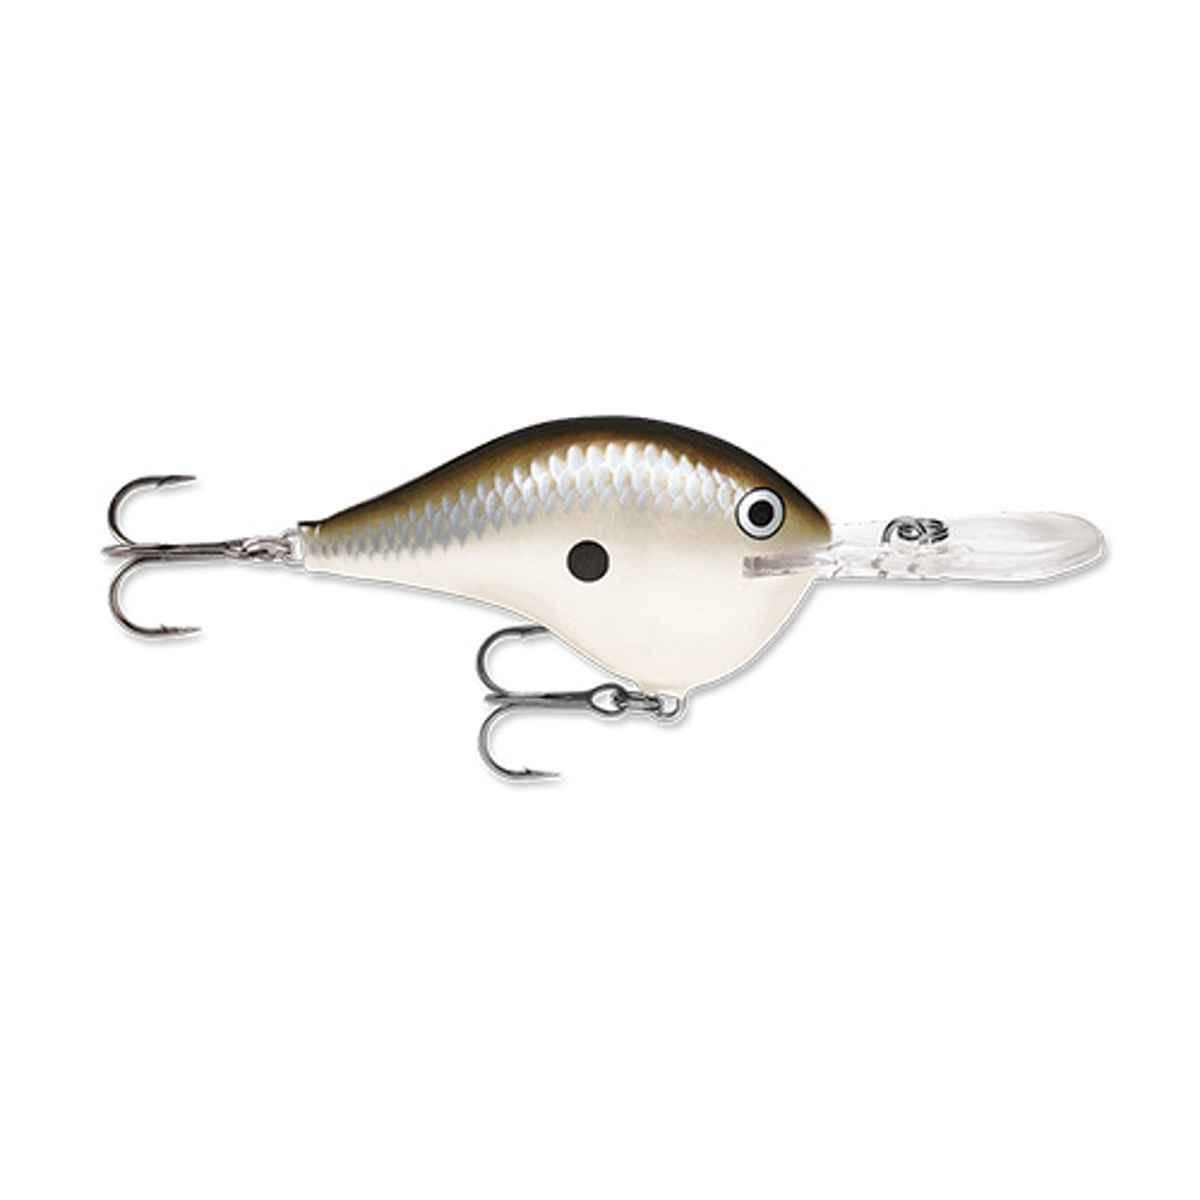 Rapala Dives to 14 Fishing Lure - 7cm, Pearl Grey